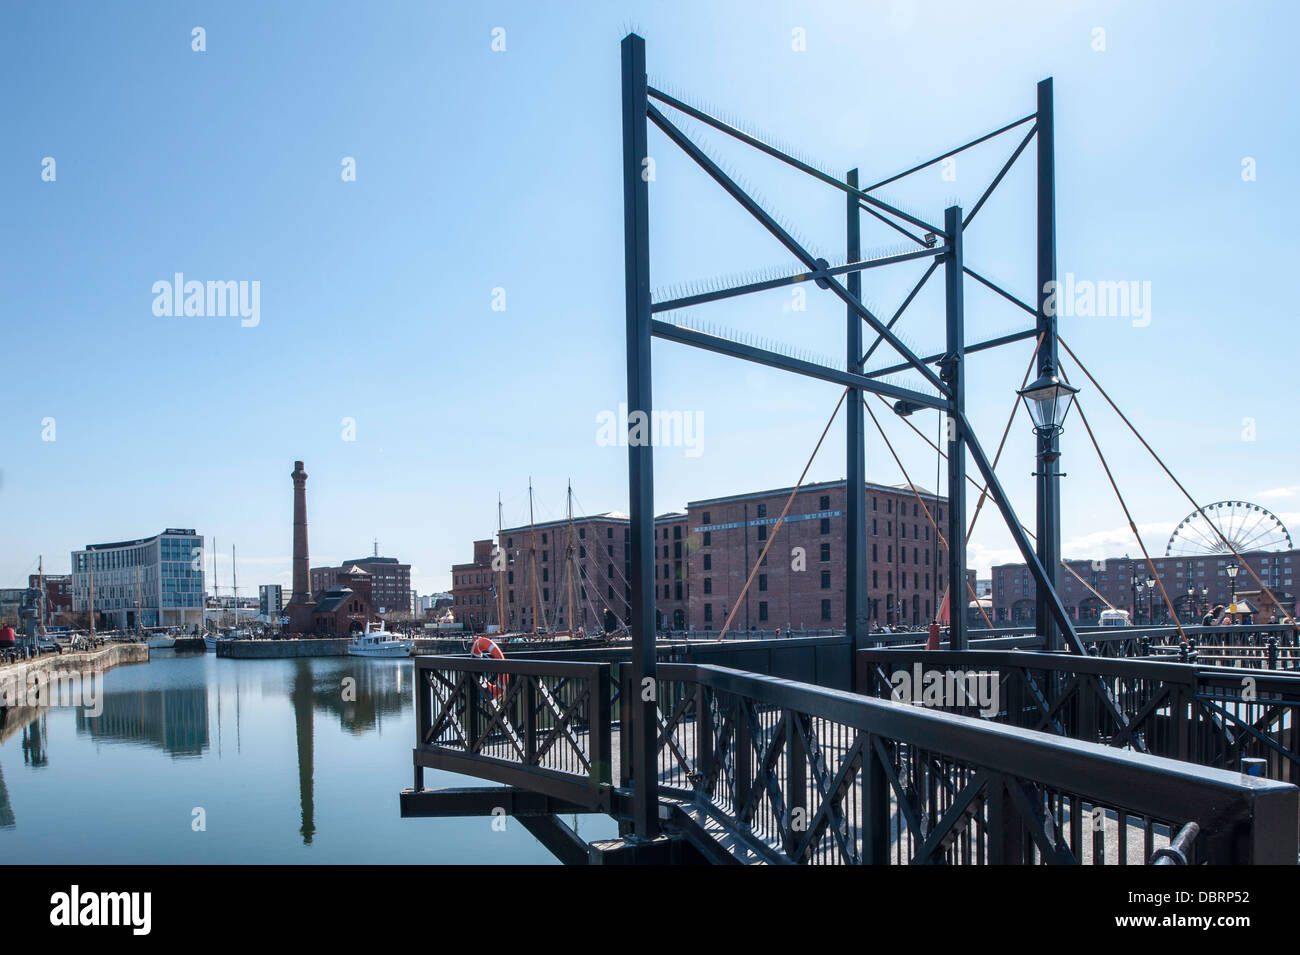 Albert Dock, Liverpool, Merseyside, United Kingdom - Stock Image